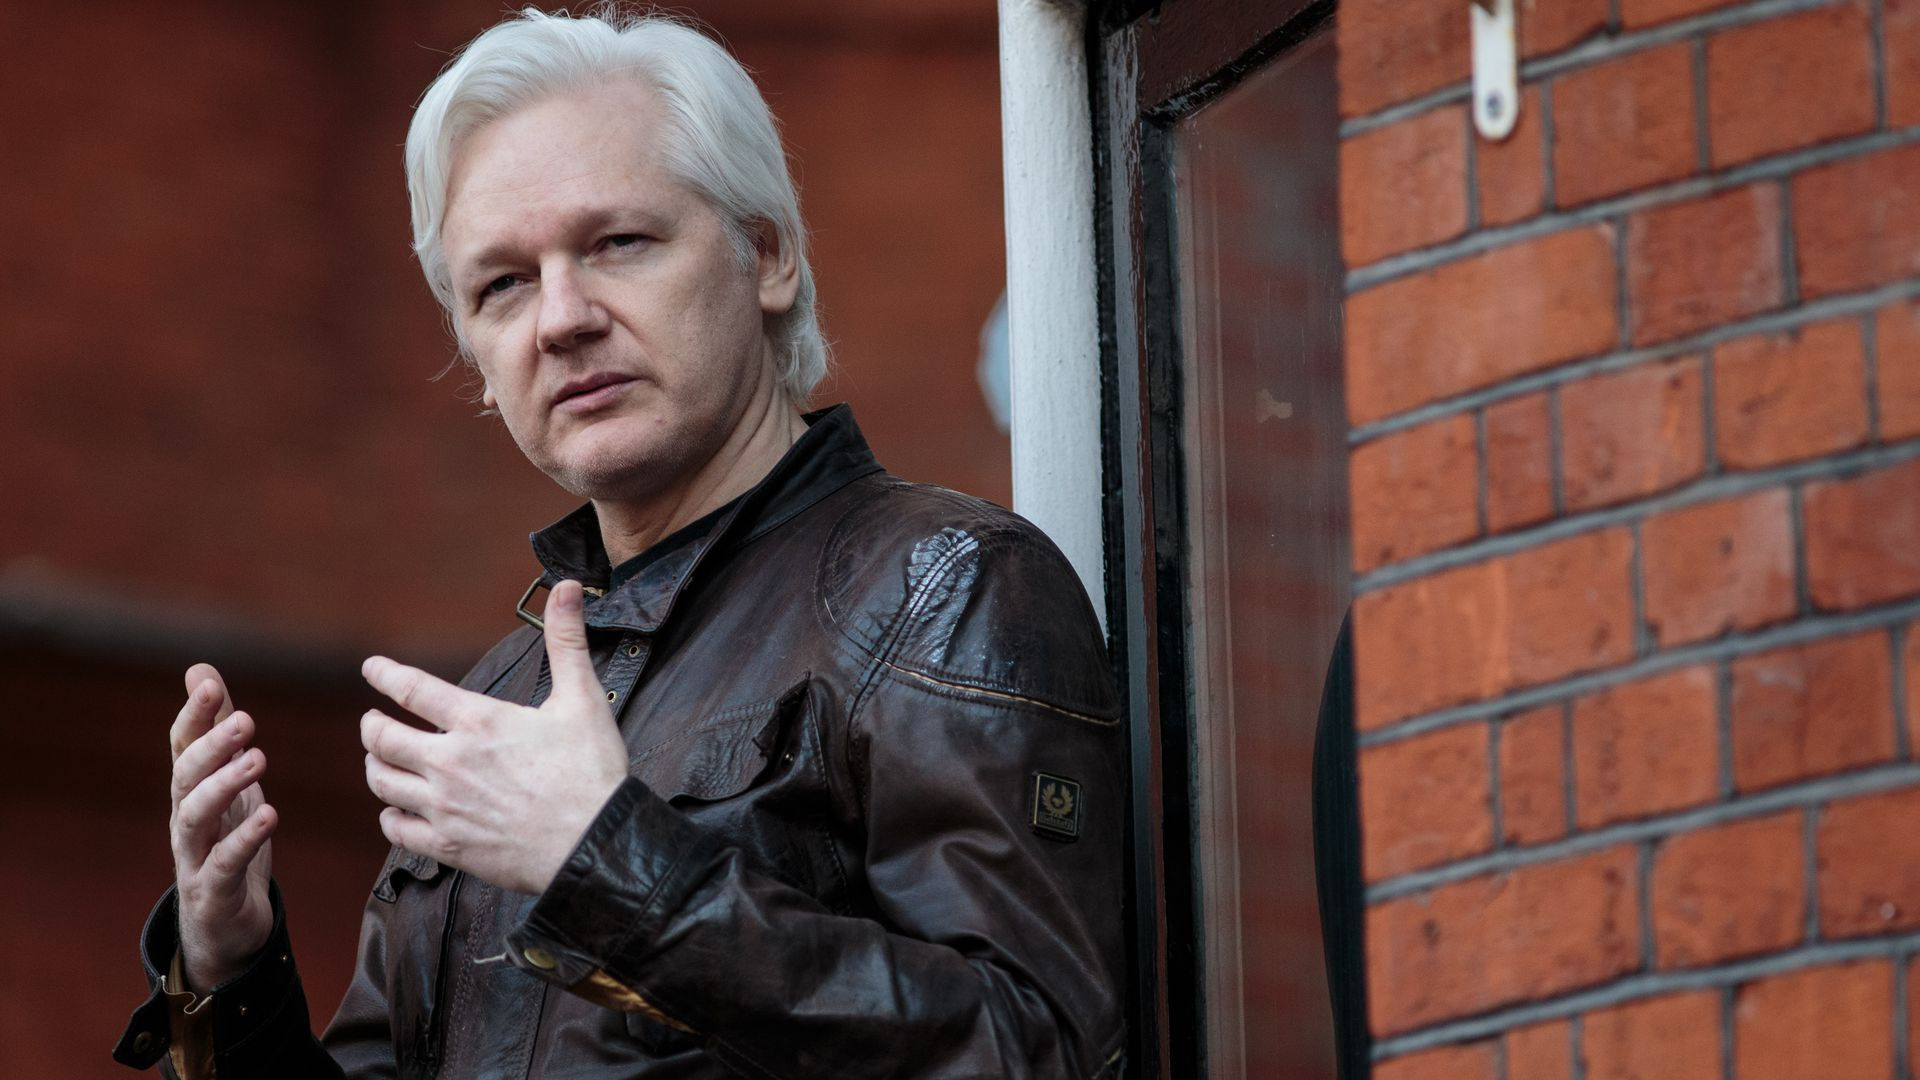 Justice Department accidentally reveals Julian Assange indictment